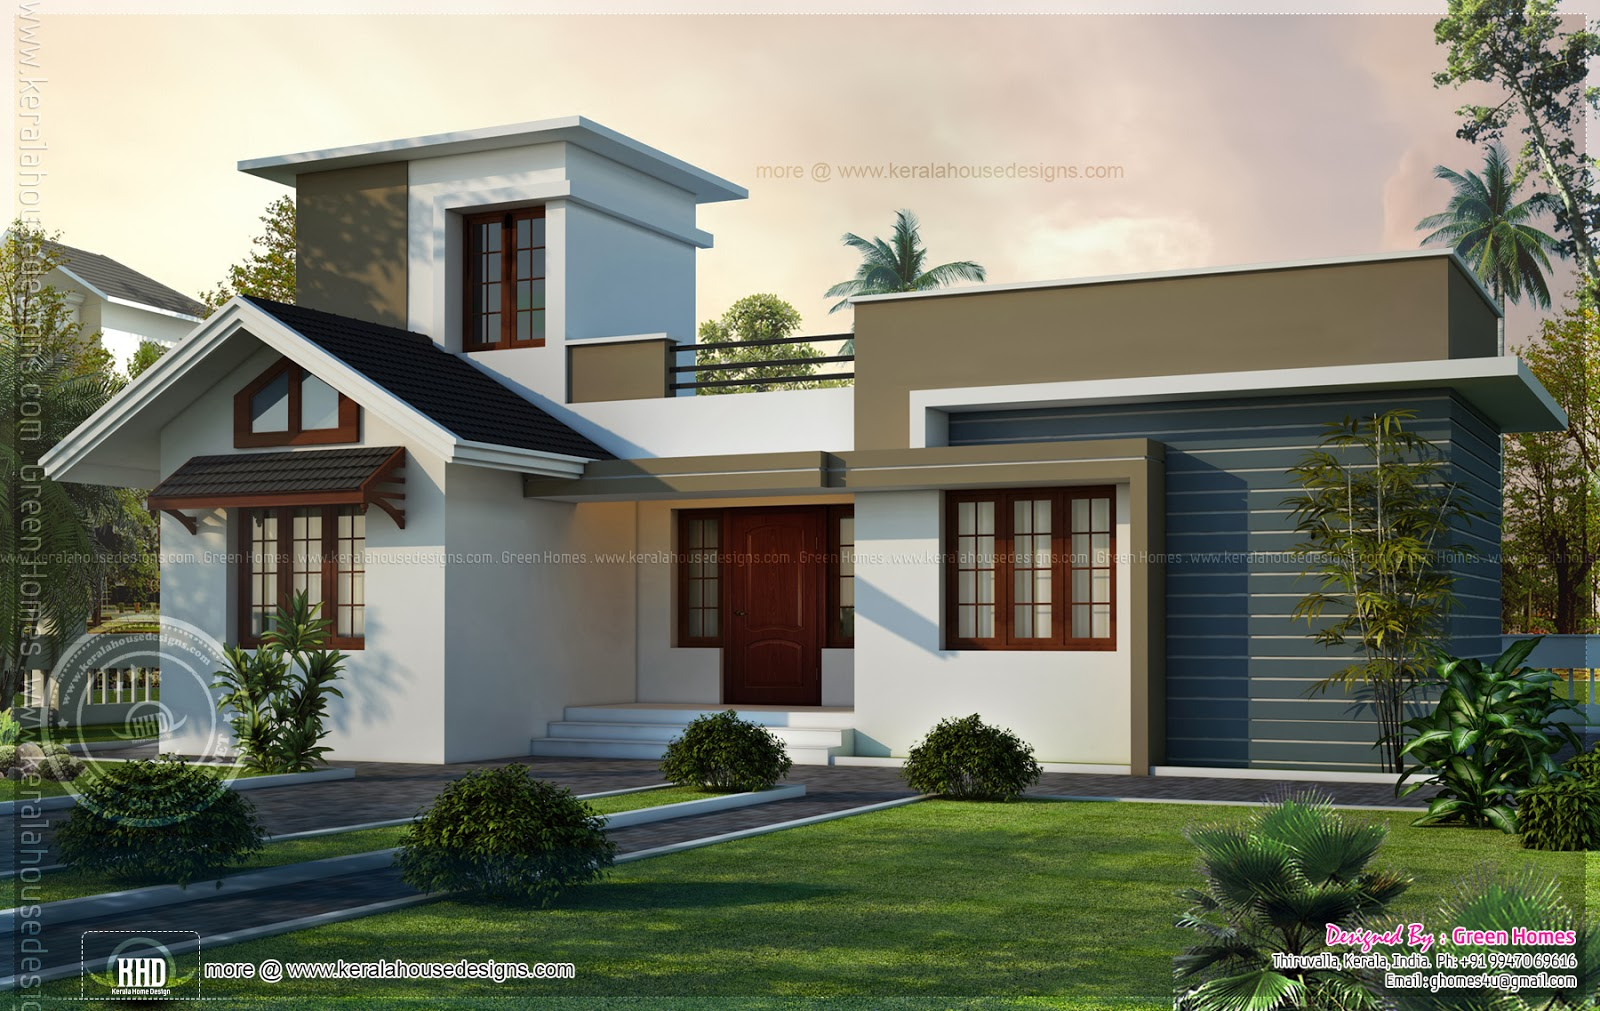 1000 square feet small house design kerala home design and floor plans - Small house plans ...